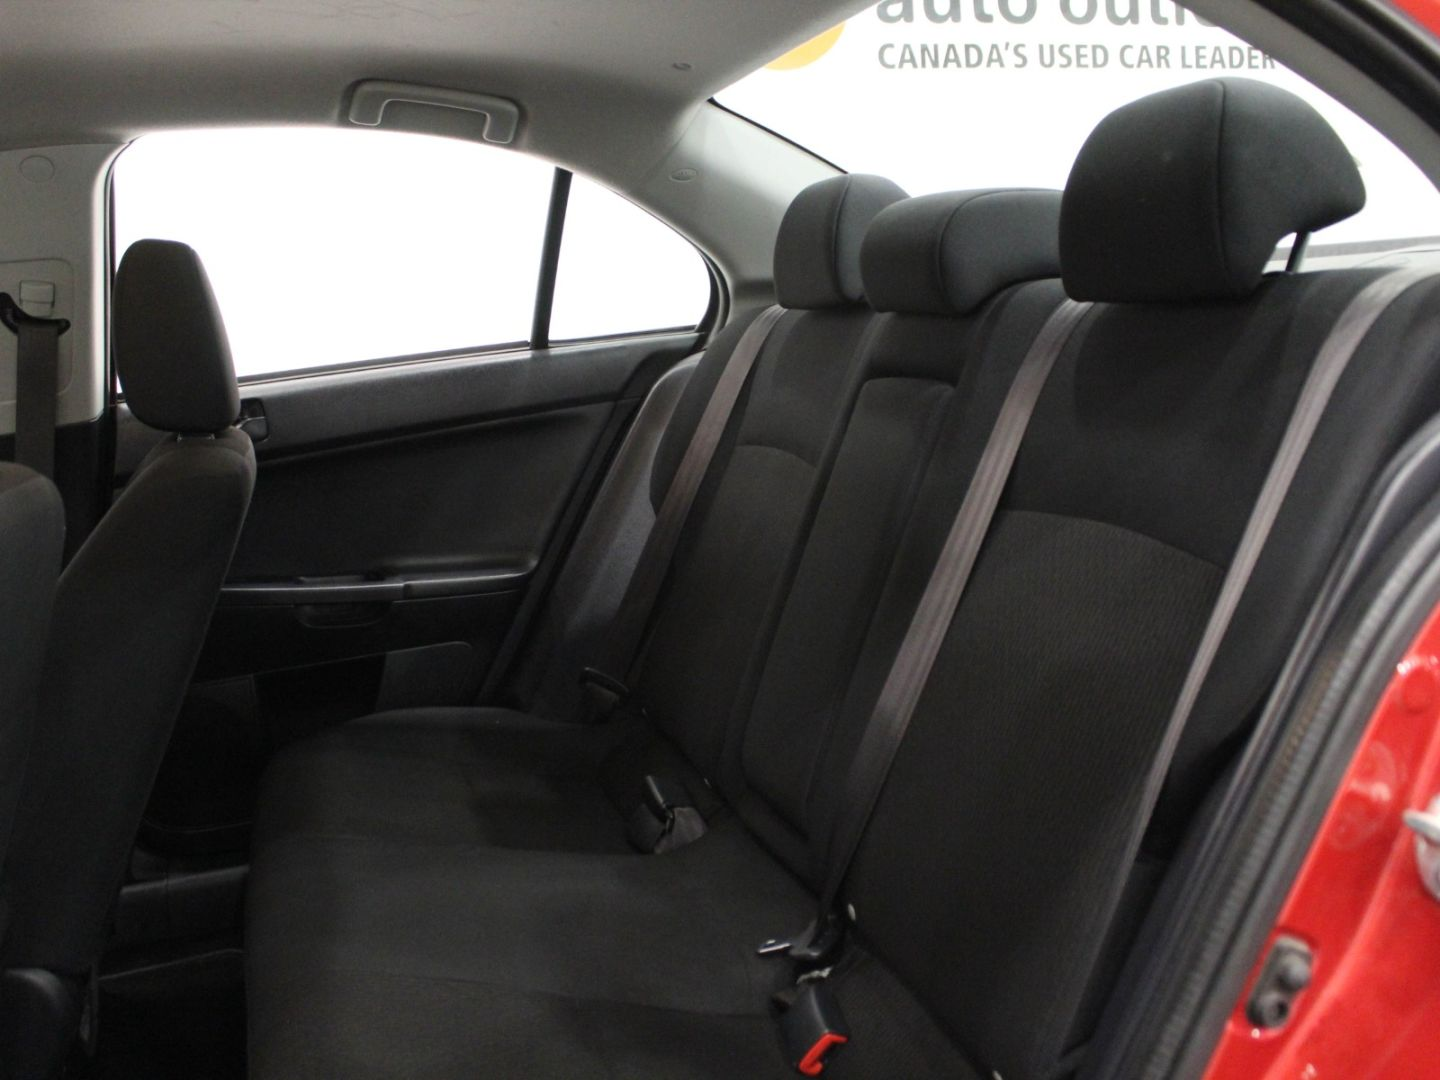 2017 Mitsubishi Lancer ES for sale in Edmonton, Alberta